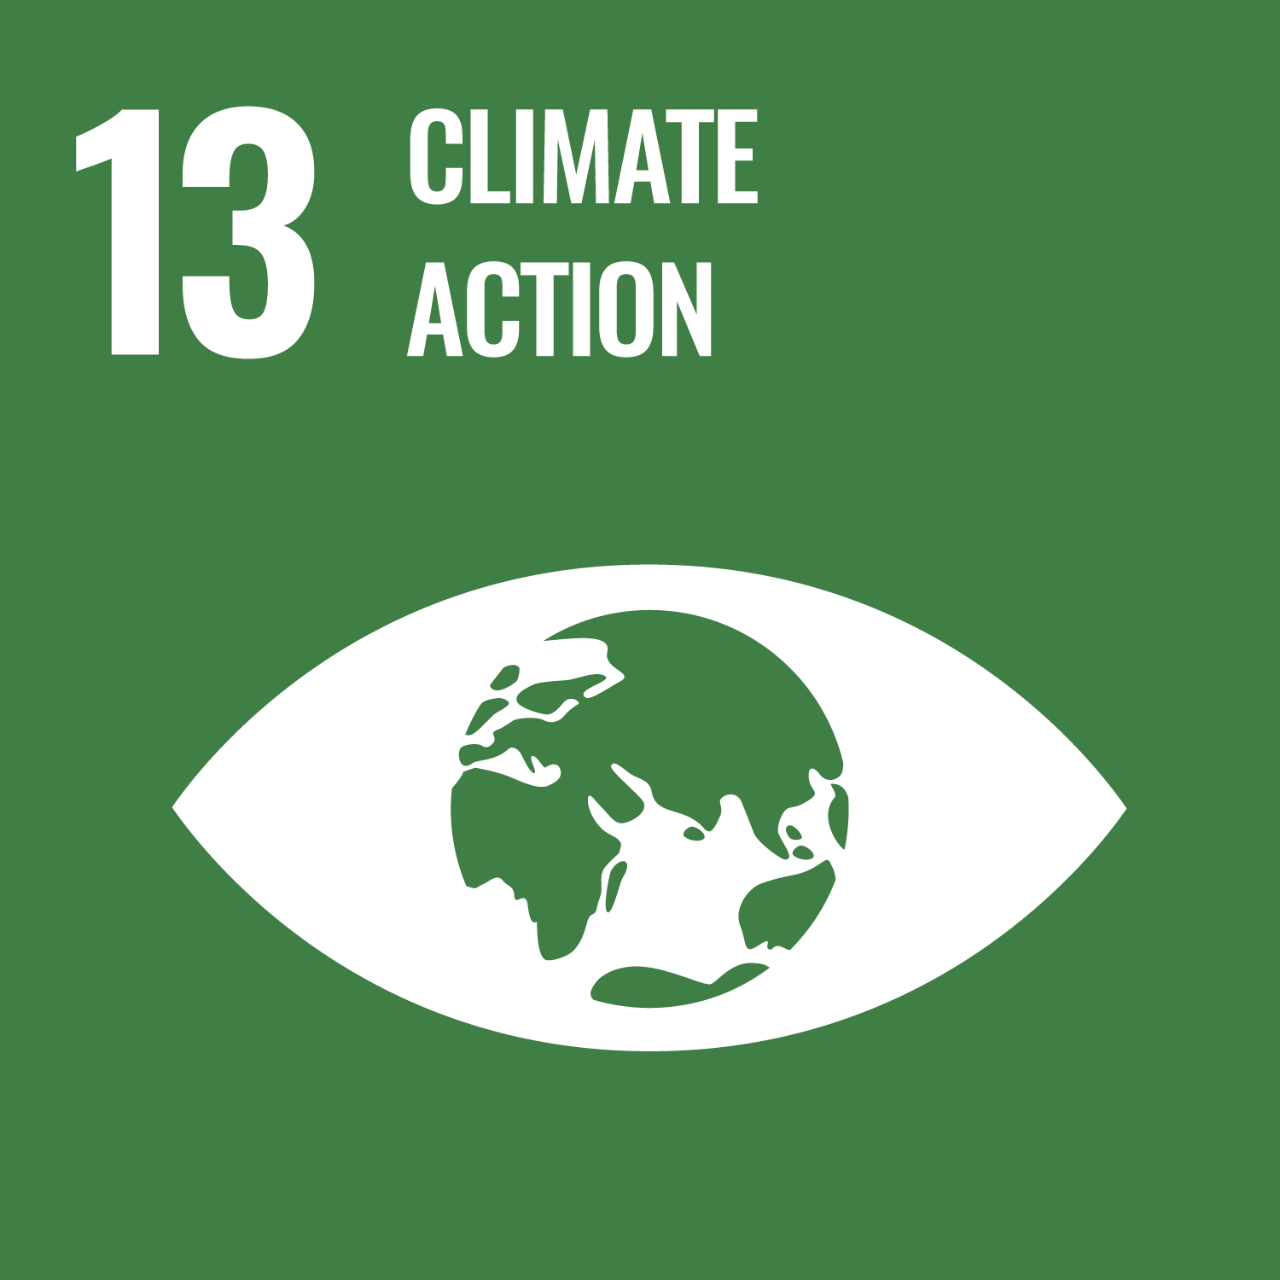 The Sustainable Development Goal 13 aims to take urgent action to combat climate change and its impacts""